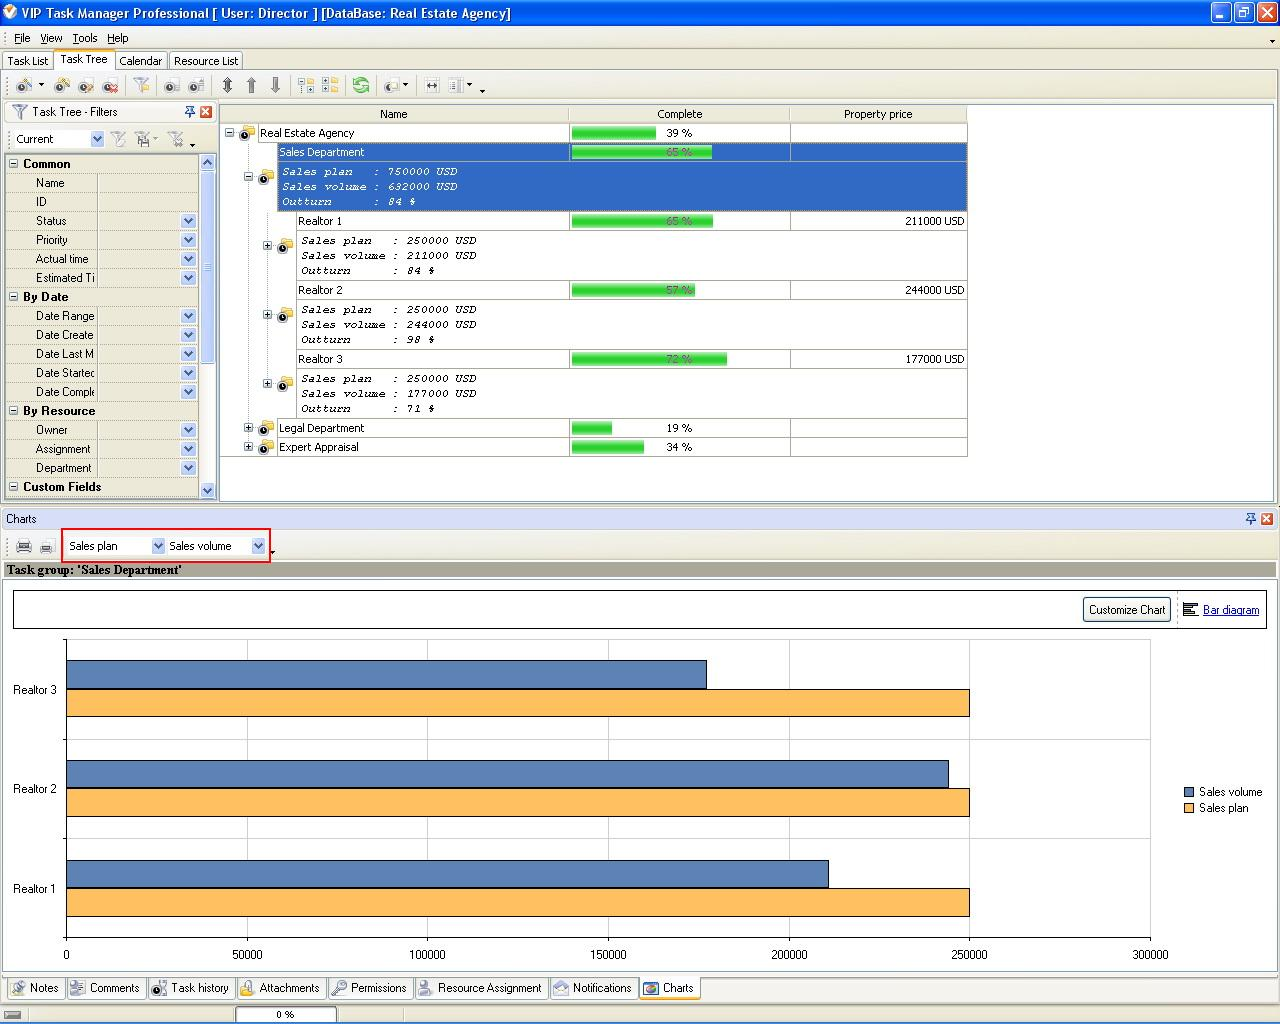 Talent management software contributes to performance